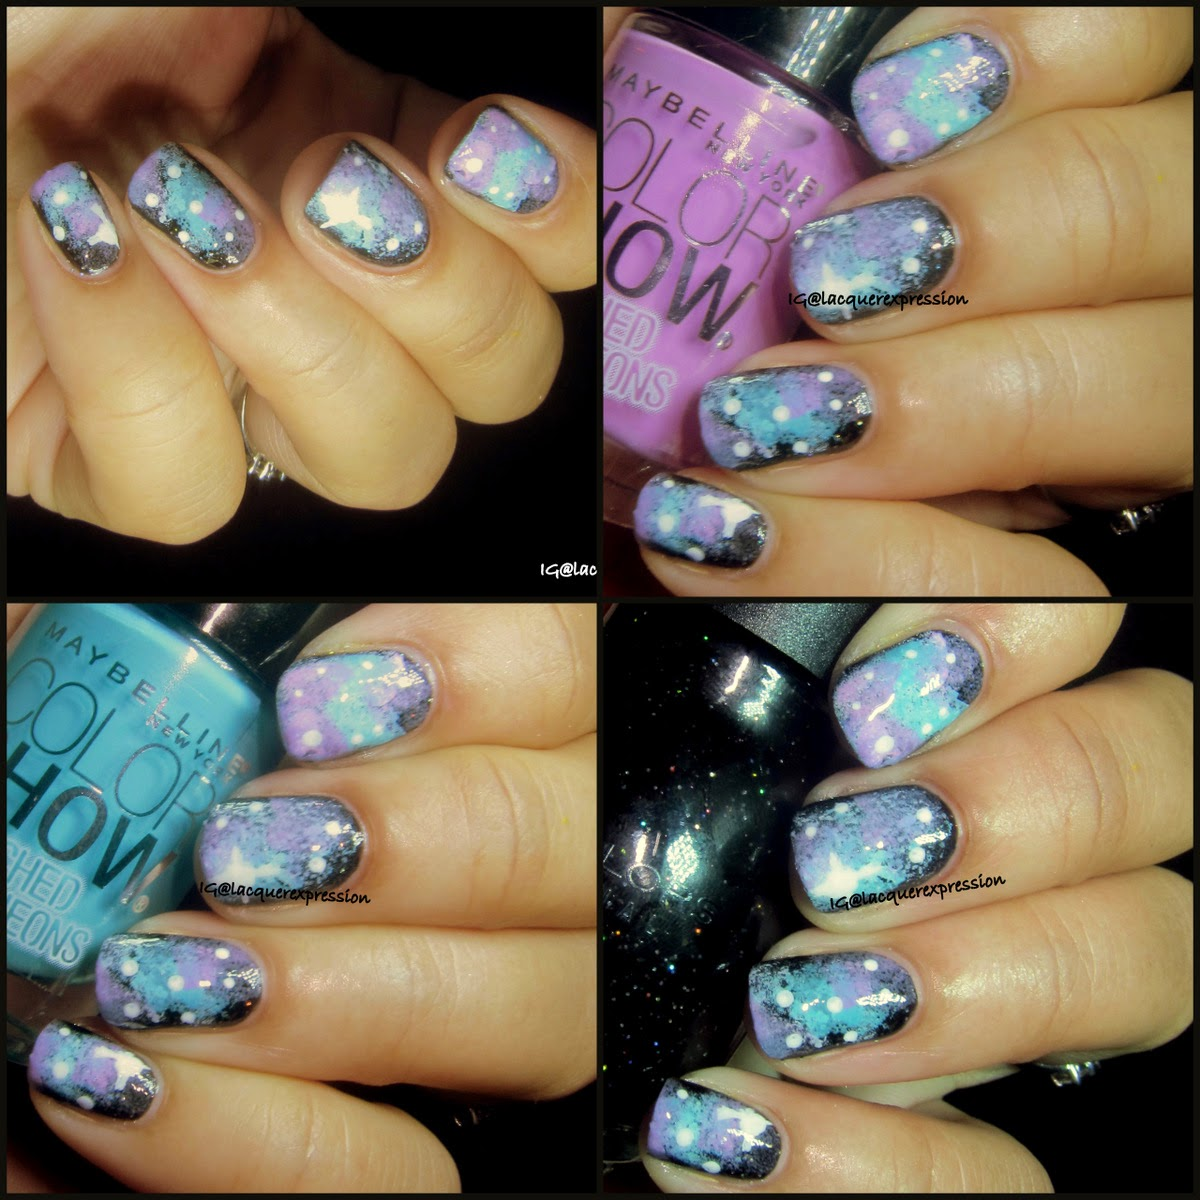 Galaxy nail art using starry night polish by sinful colors and day glow teal and ultra violet polish by maybelline